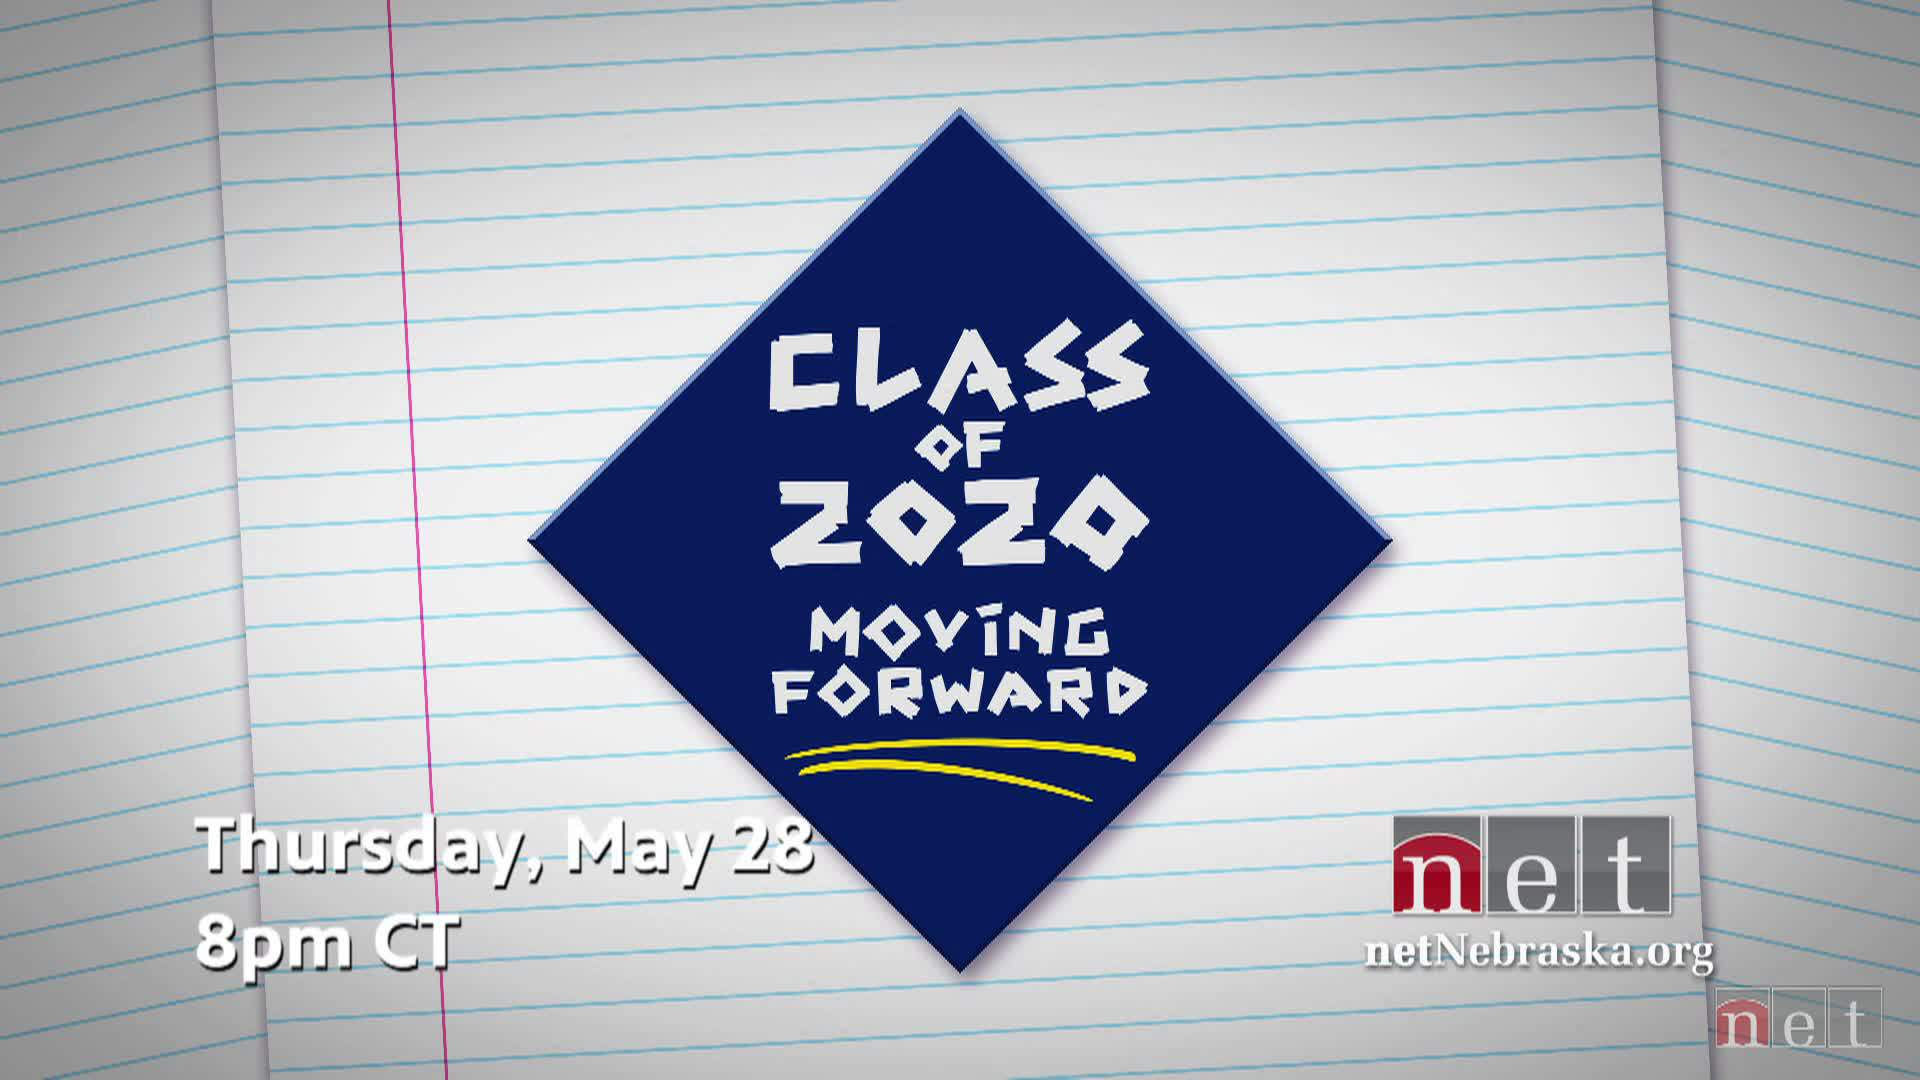 Class of 2020 Moving Forward Thursday, May 28th,